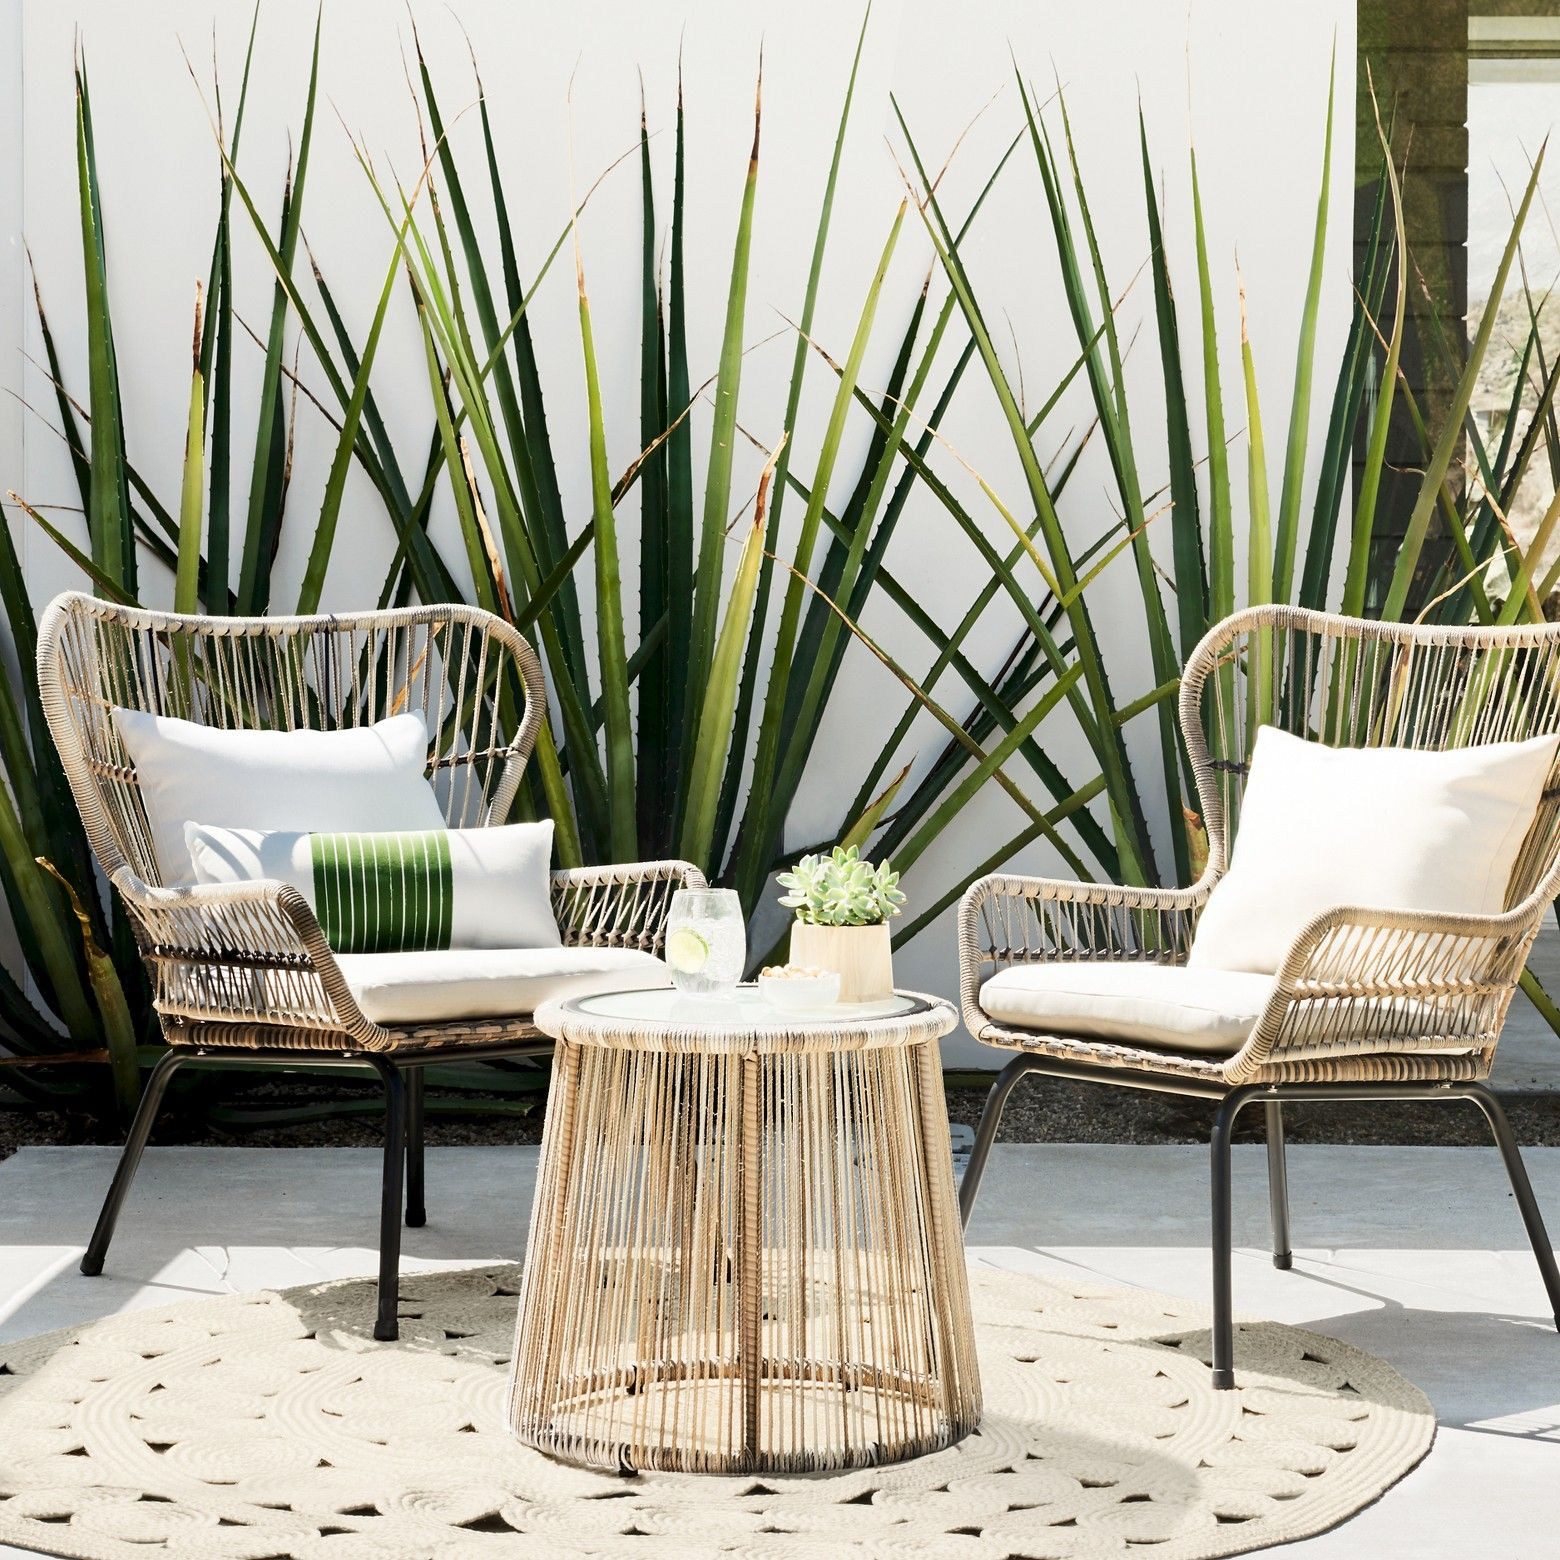 Latigo 3pc All Weather Wicker Outdoor Patio Chat Set Tan